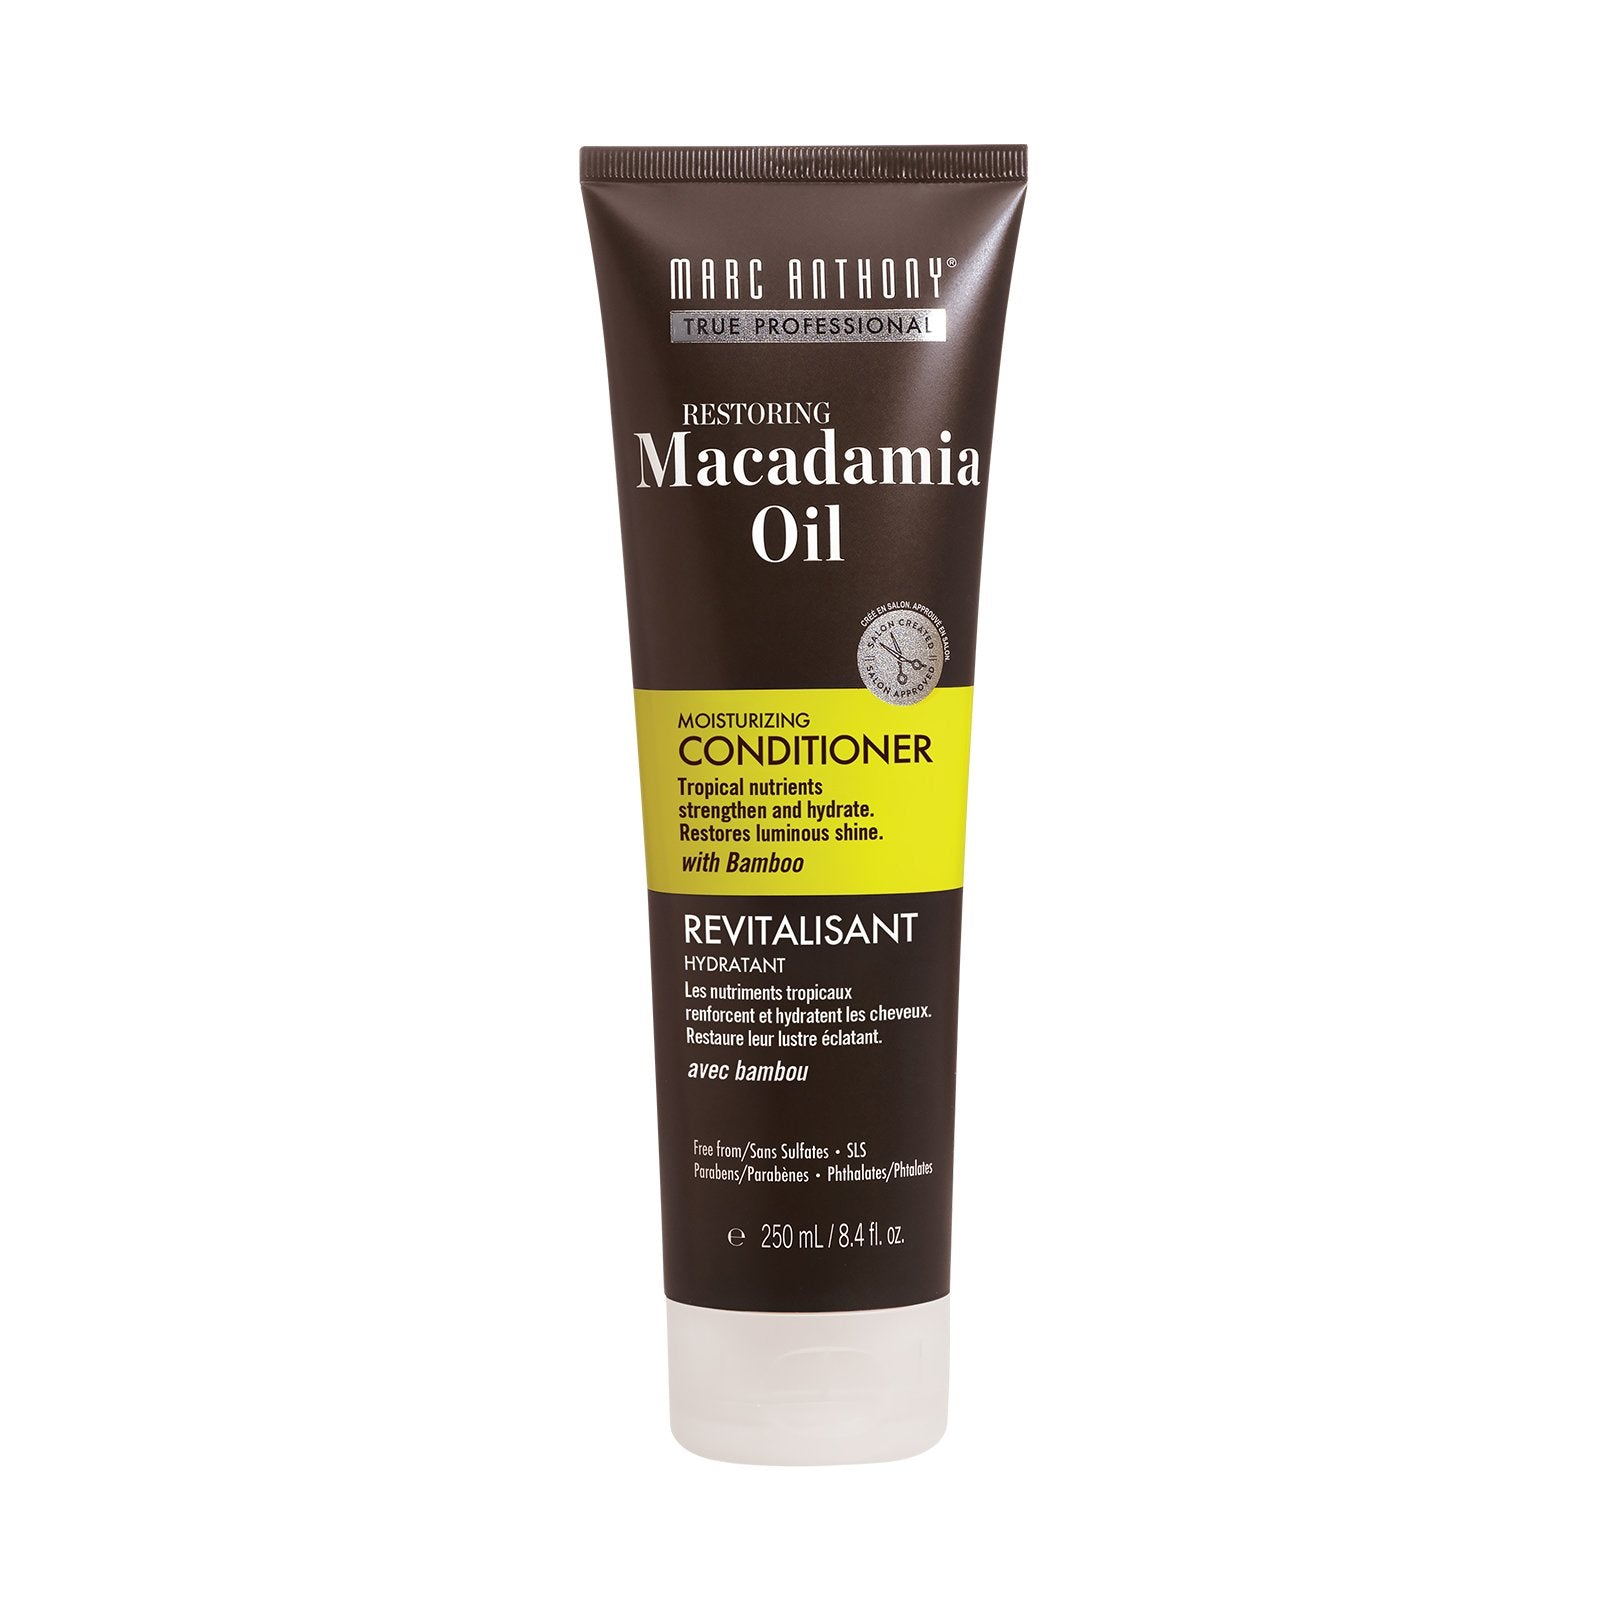 Repairing Macadamia Oil Conditioner 250ml